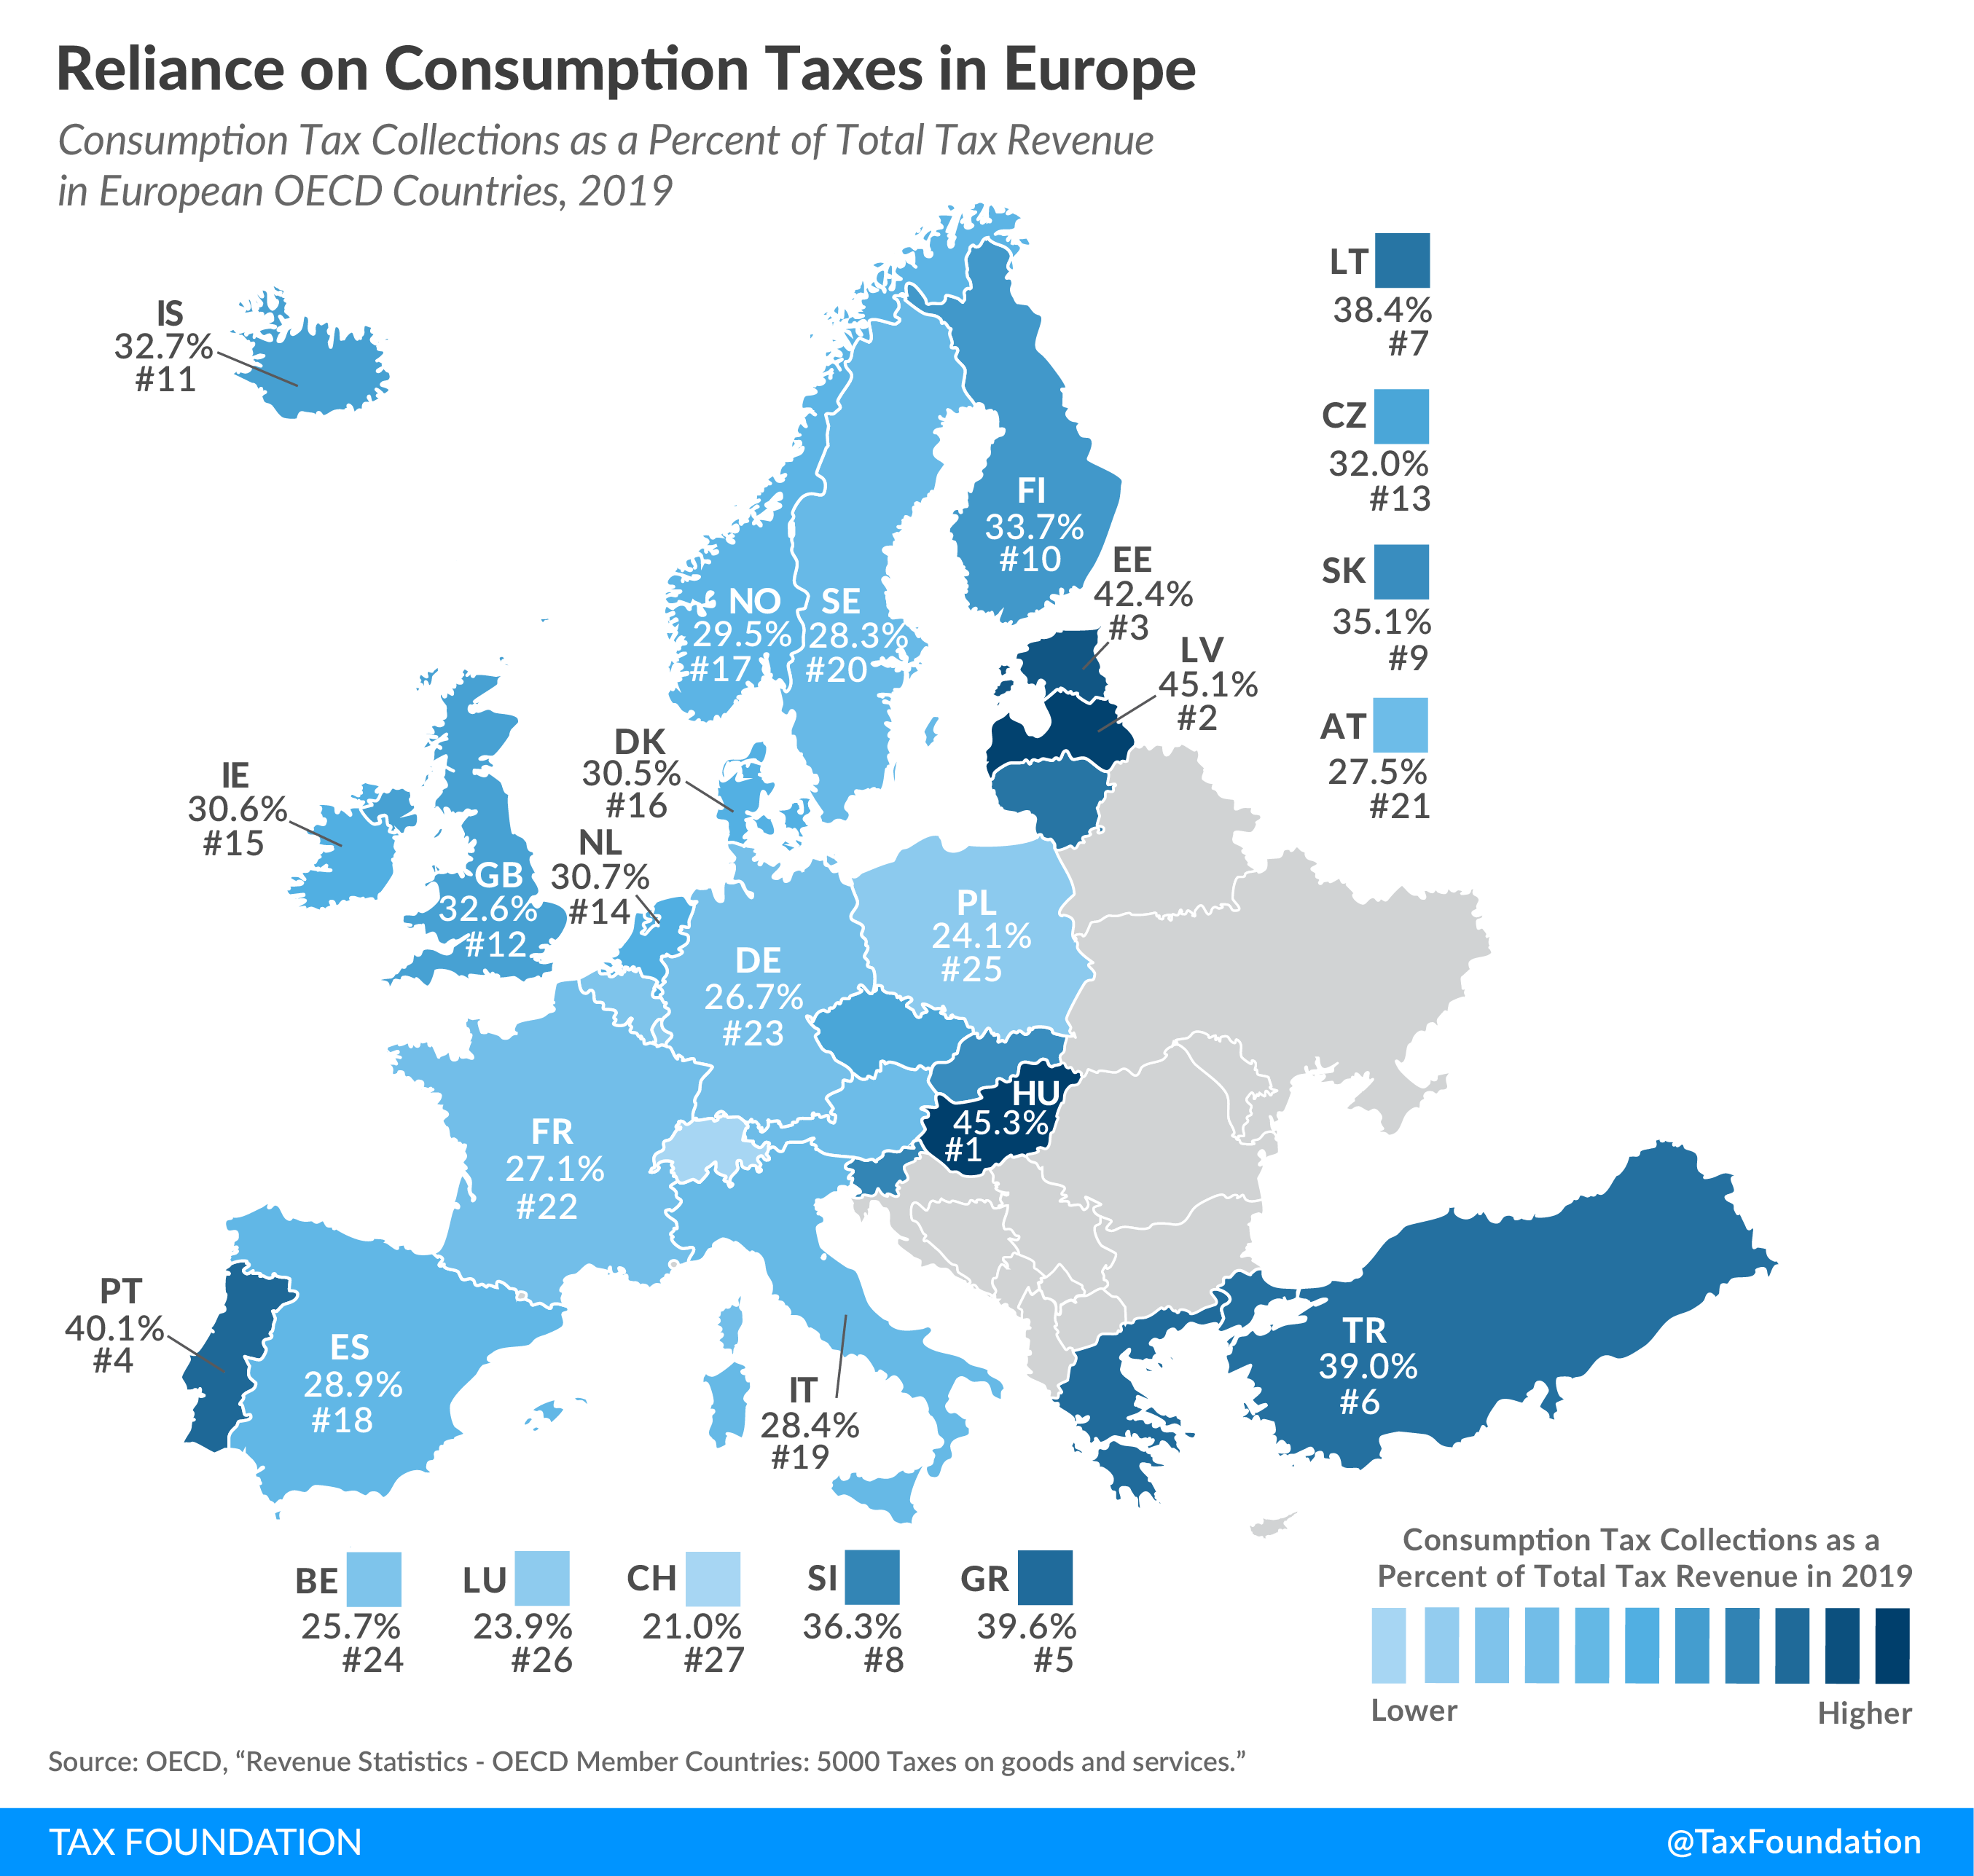 Consumption taxes in Europe, reliance on consumption taxes in Europe, reliance on consumption tax revenue in Europe, taxes on goods and services in Europe